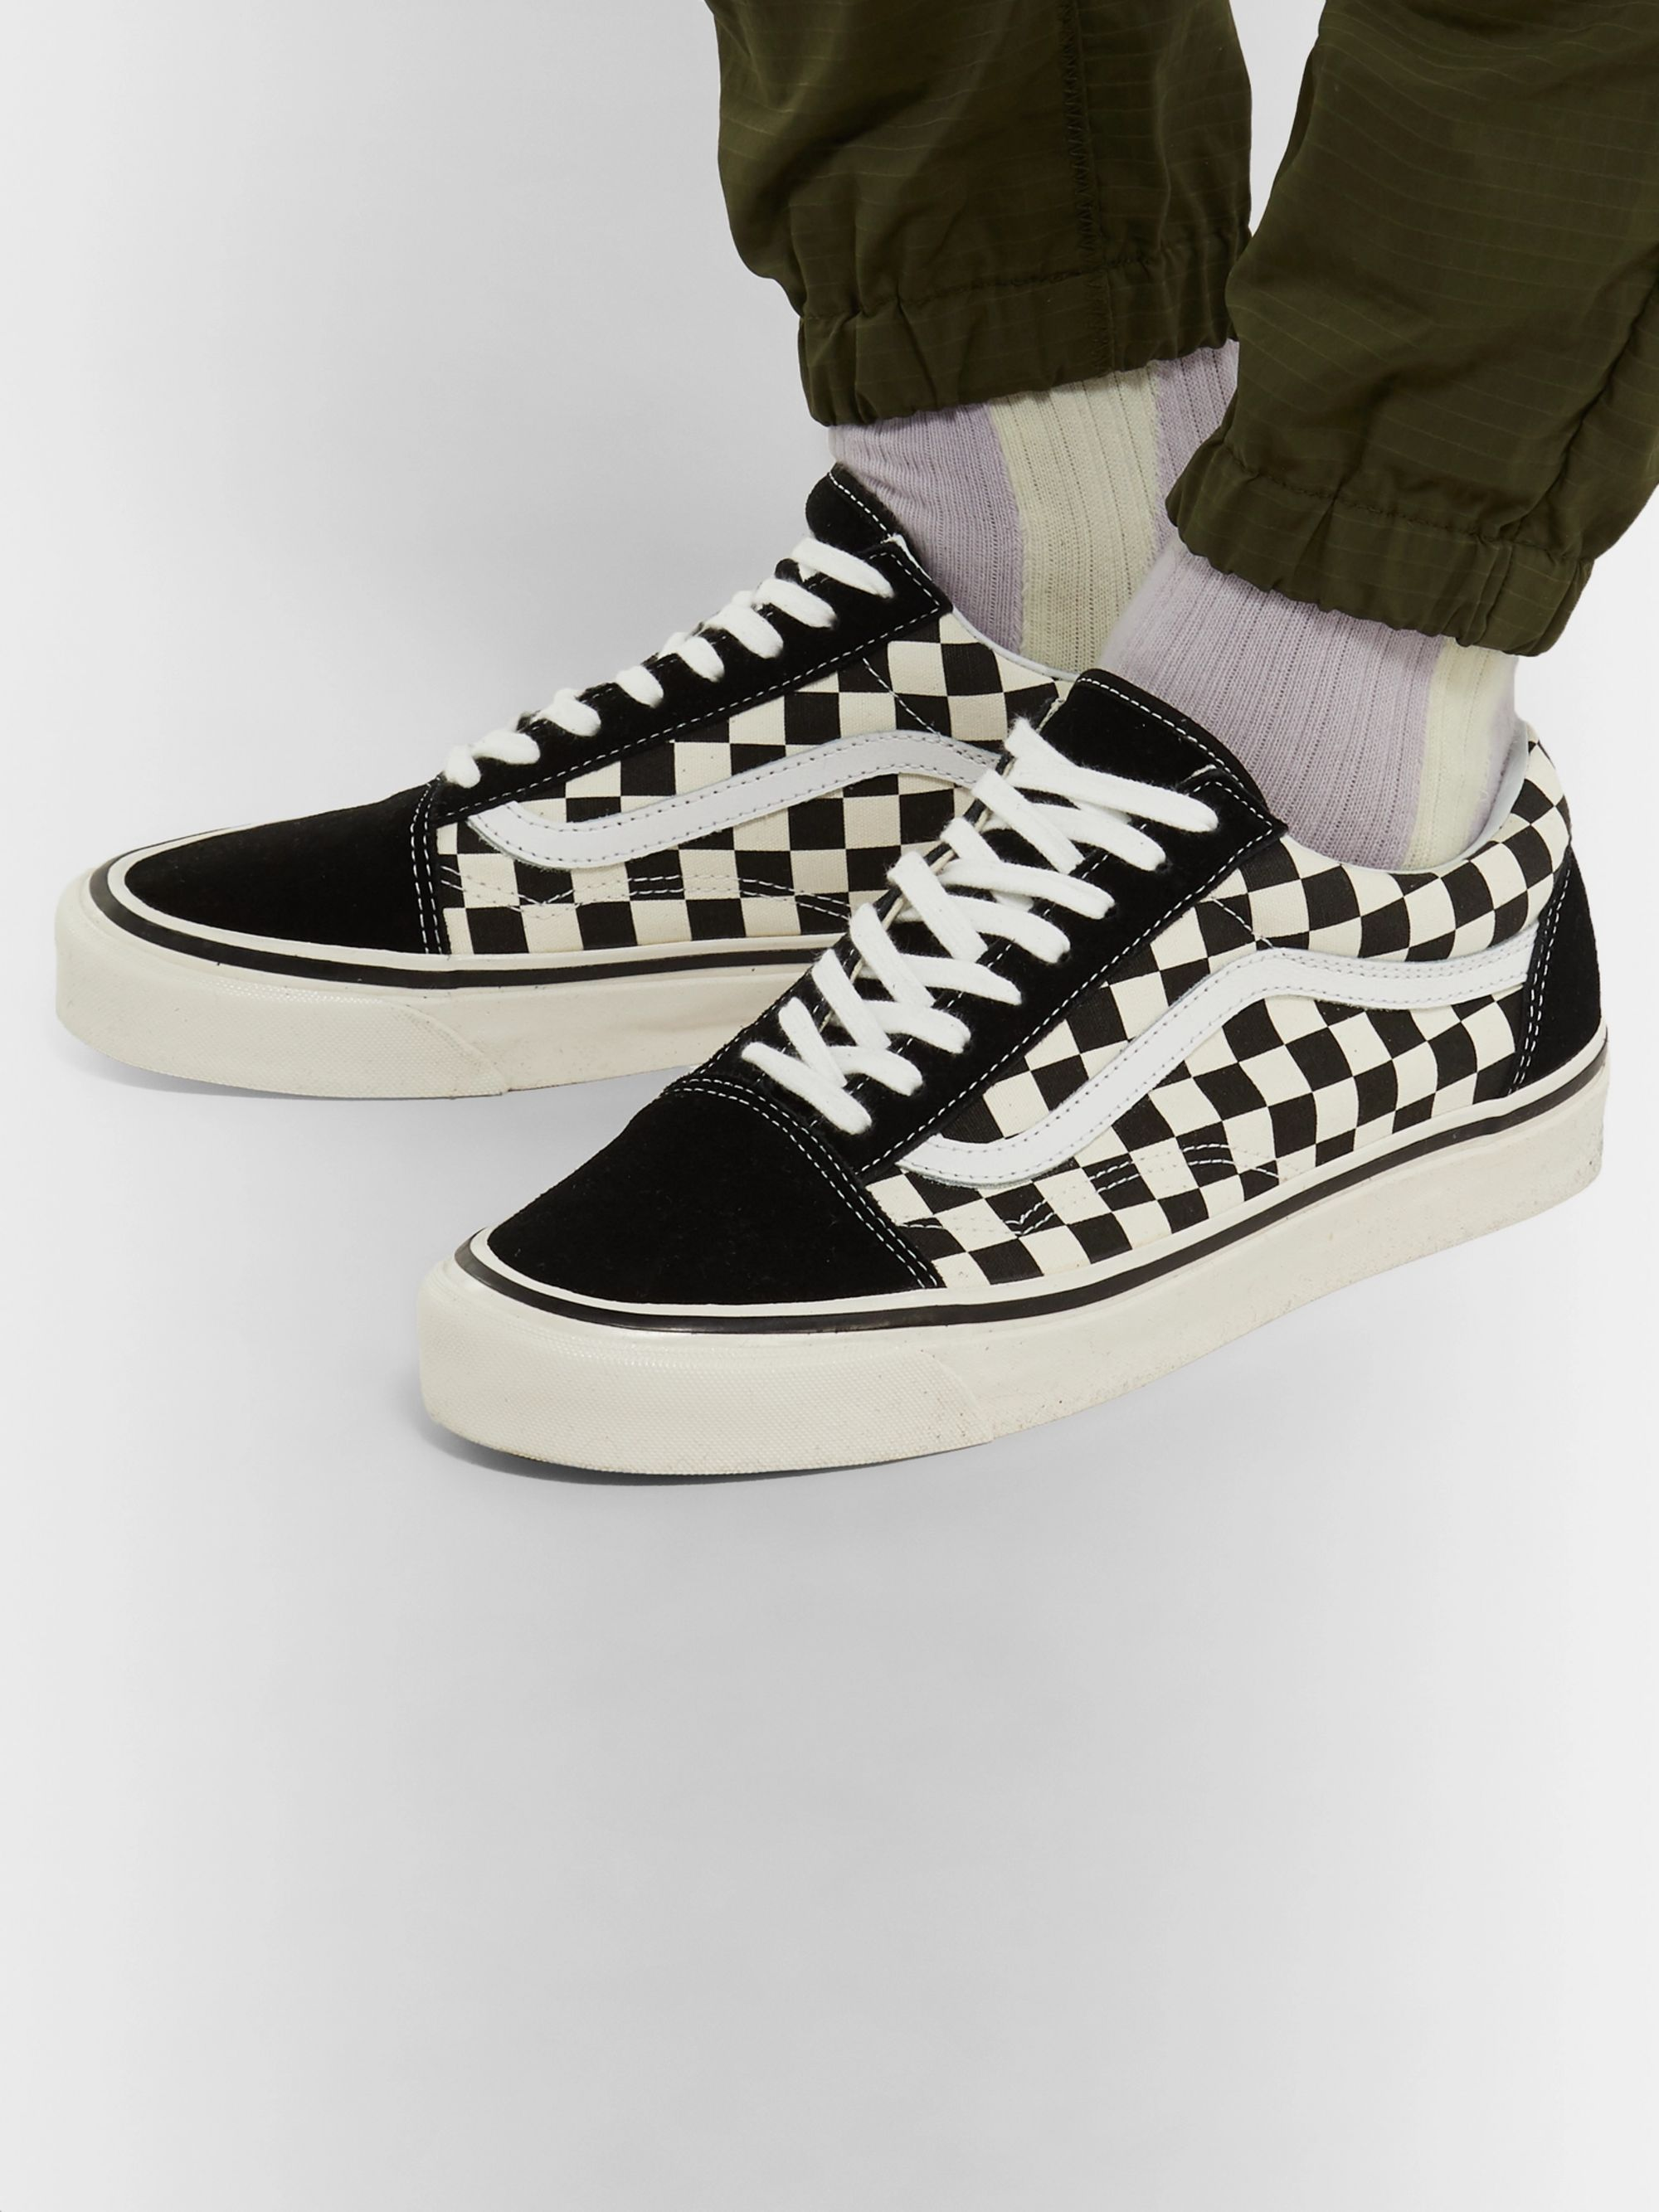 Anaheim Factory Old Skool 36 DX Leather Trimmed Checkerboard Canvas and Suede Sneakers